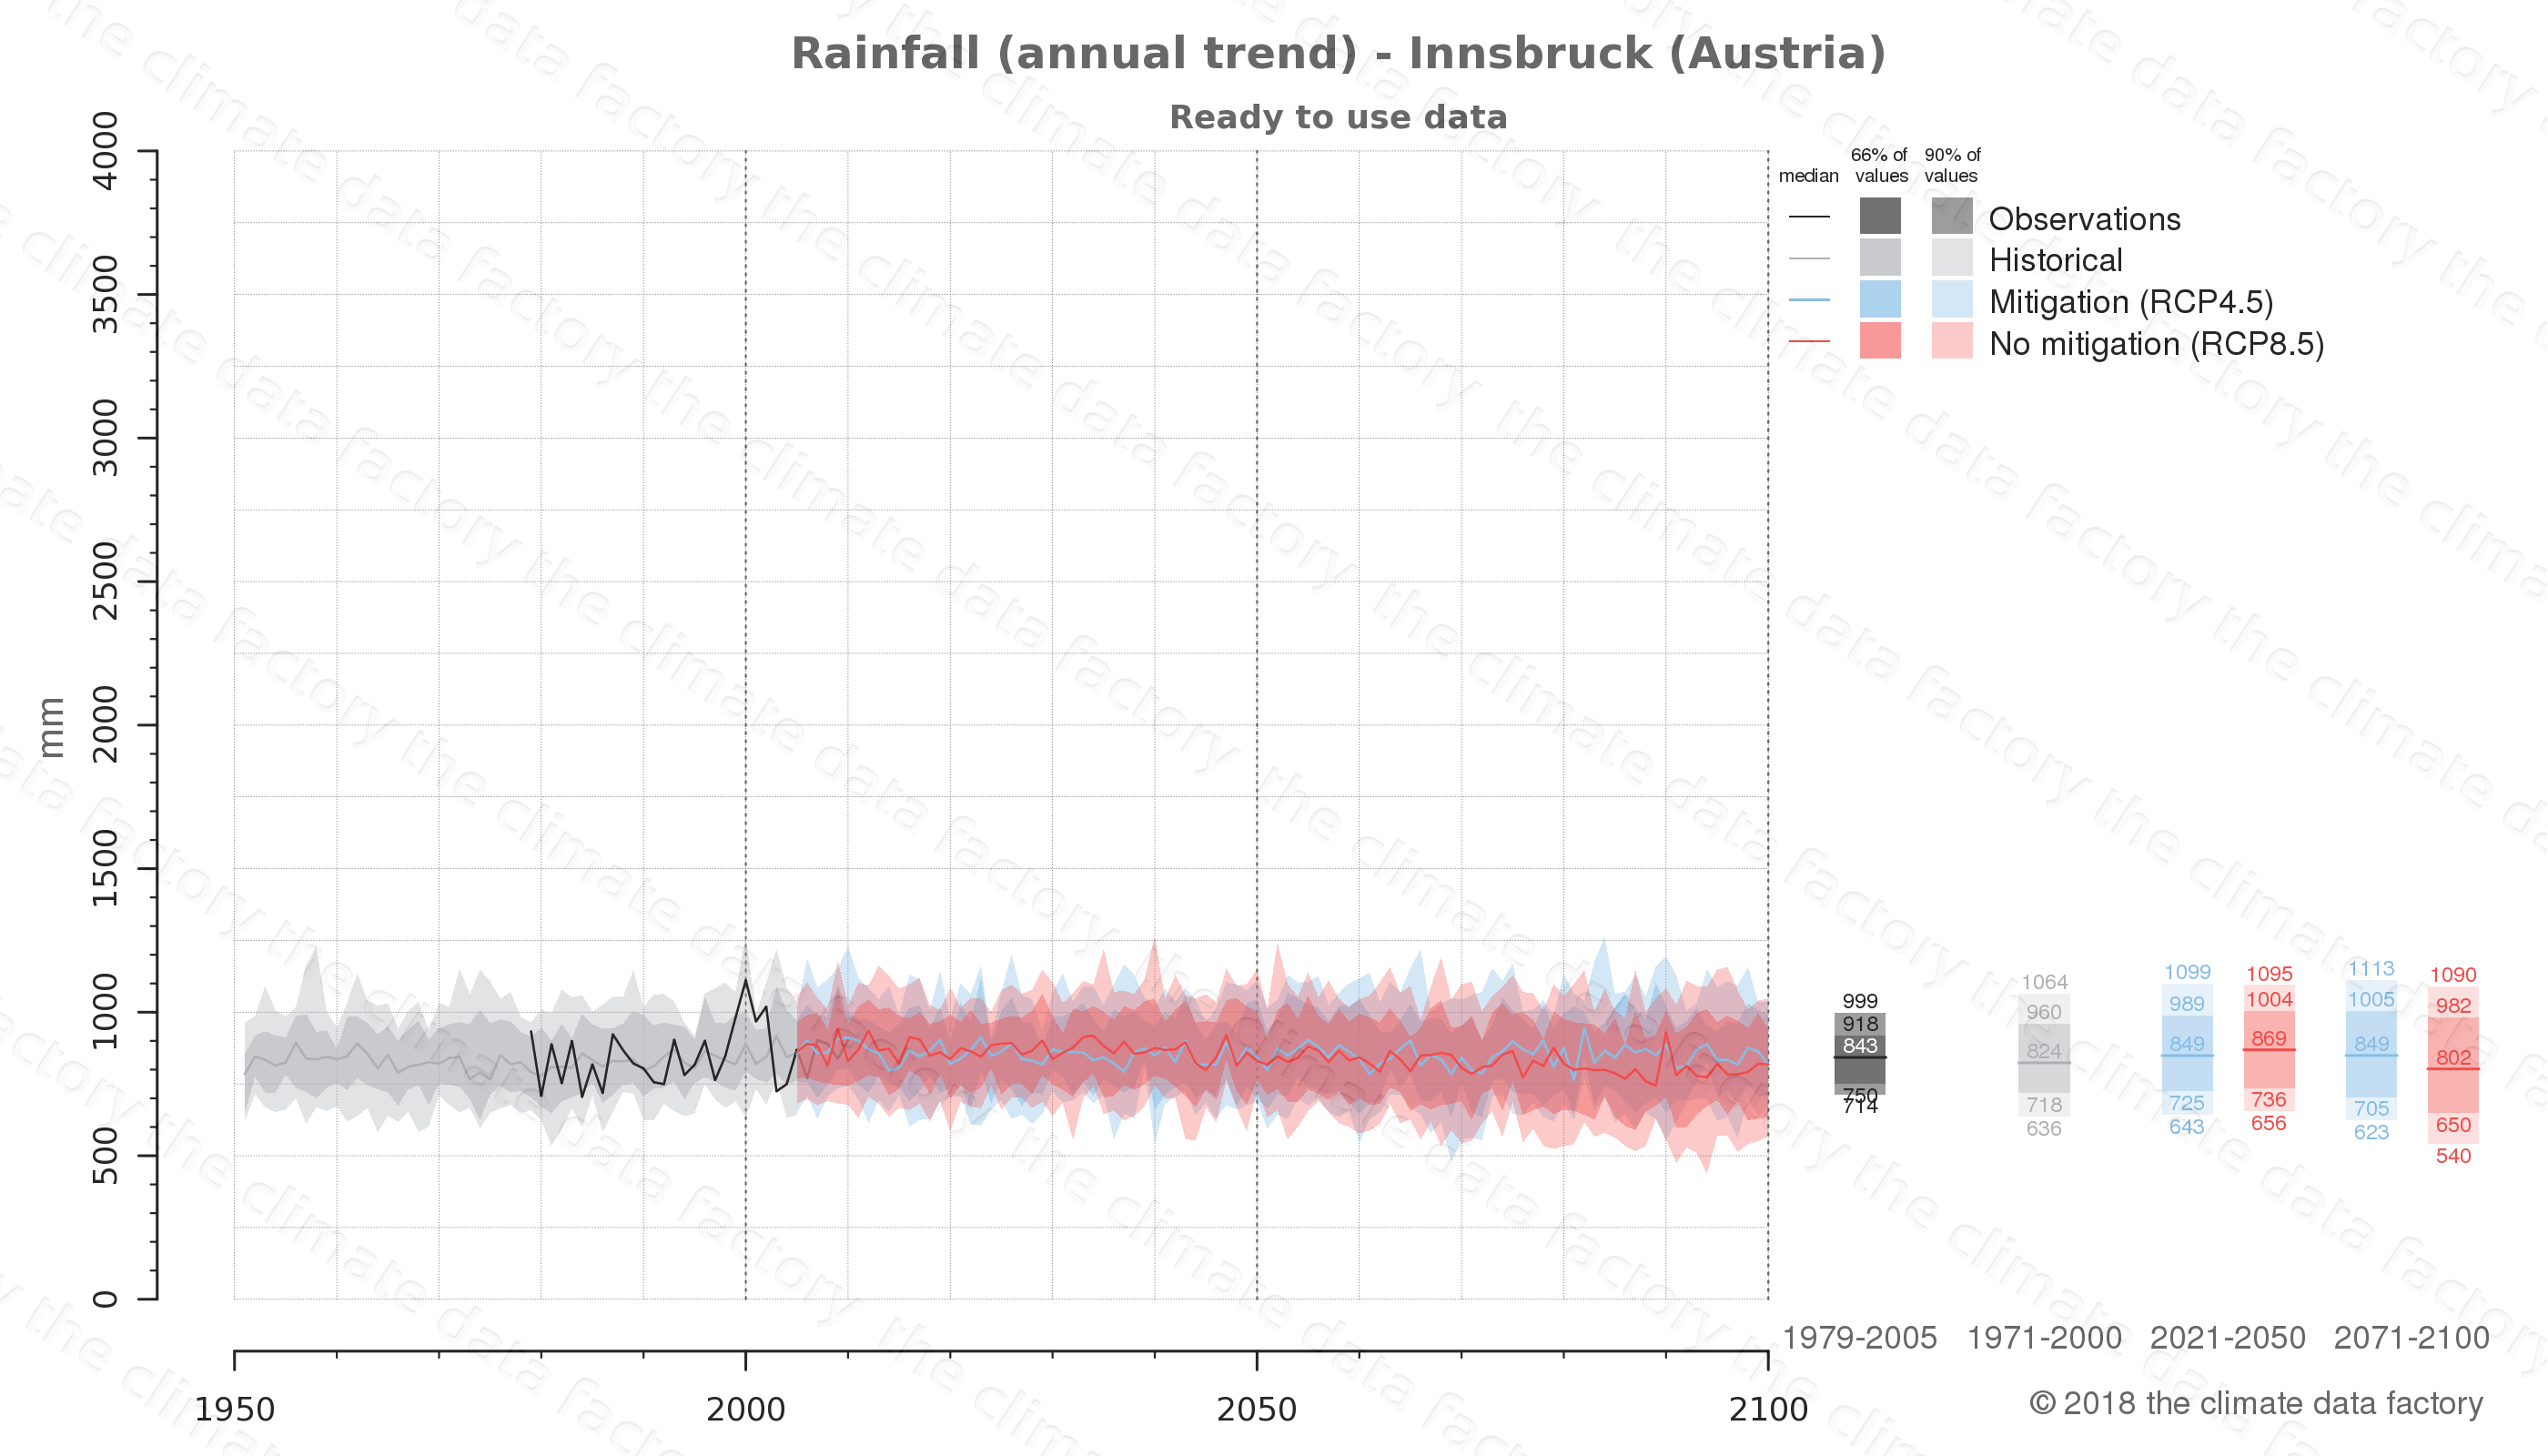 climate change data policy adaptation climate graph city data rainfall innsbruck austria